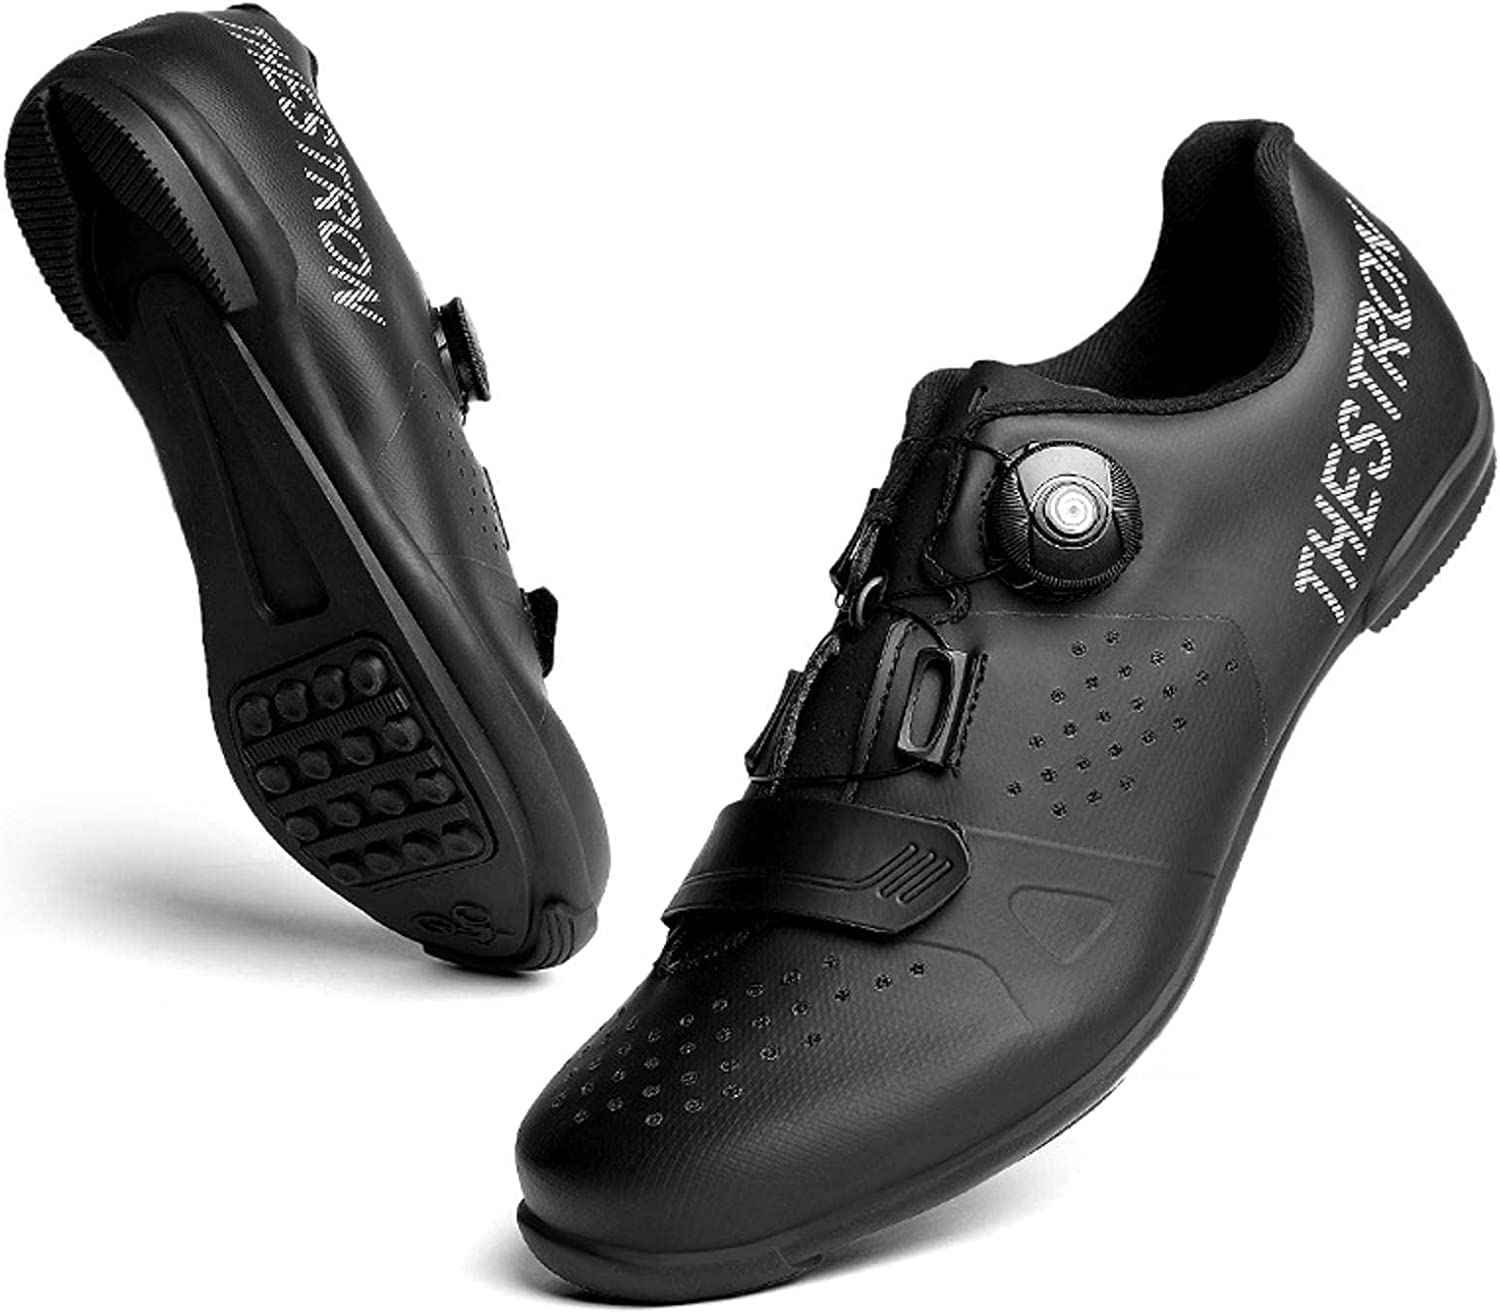 N\C 67% OFF of fixed price Bicycle Shoes Cycling Sports San Antonio Mall Motorcycle